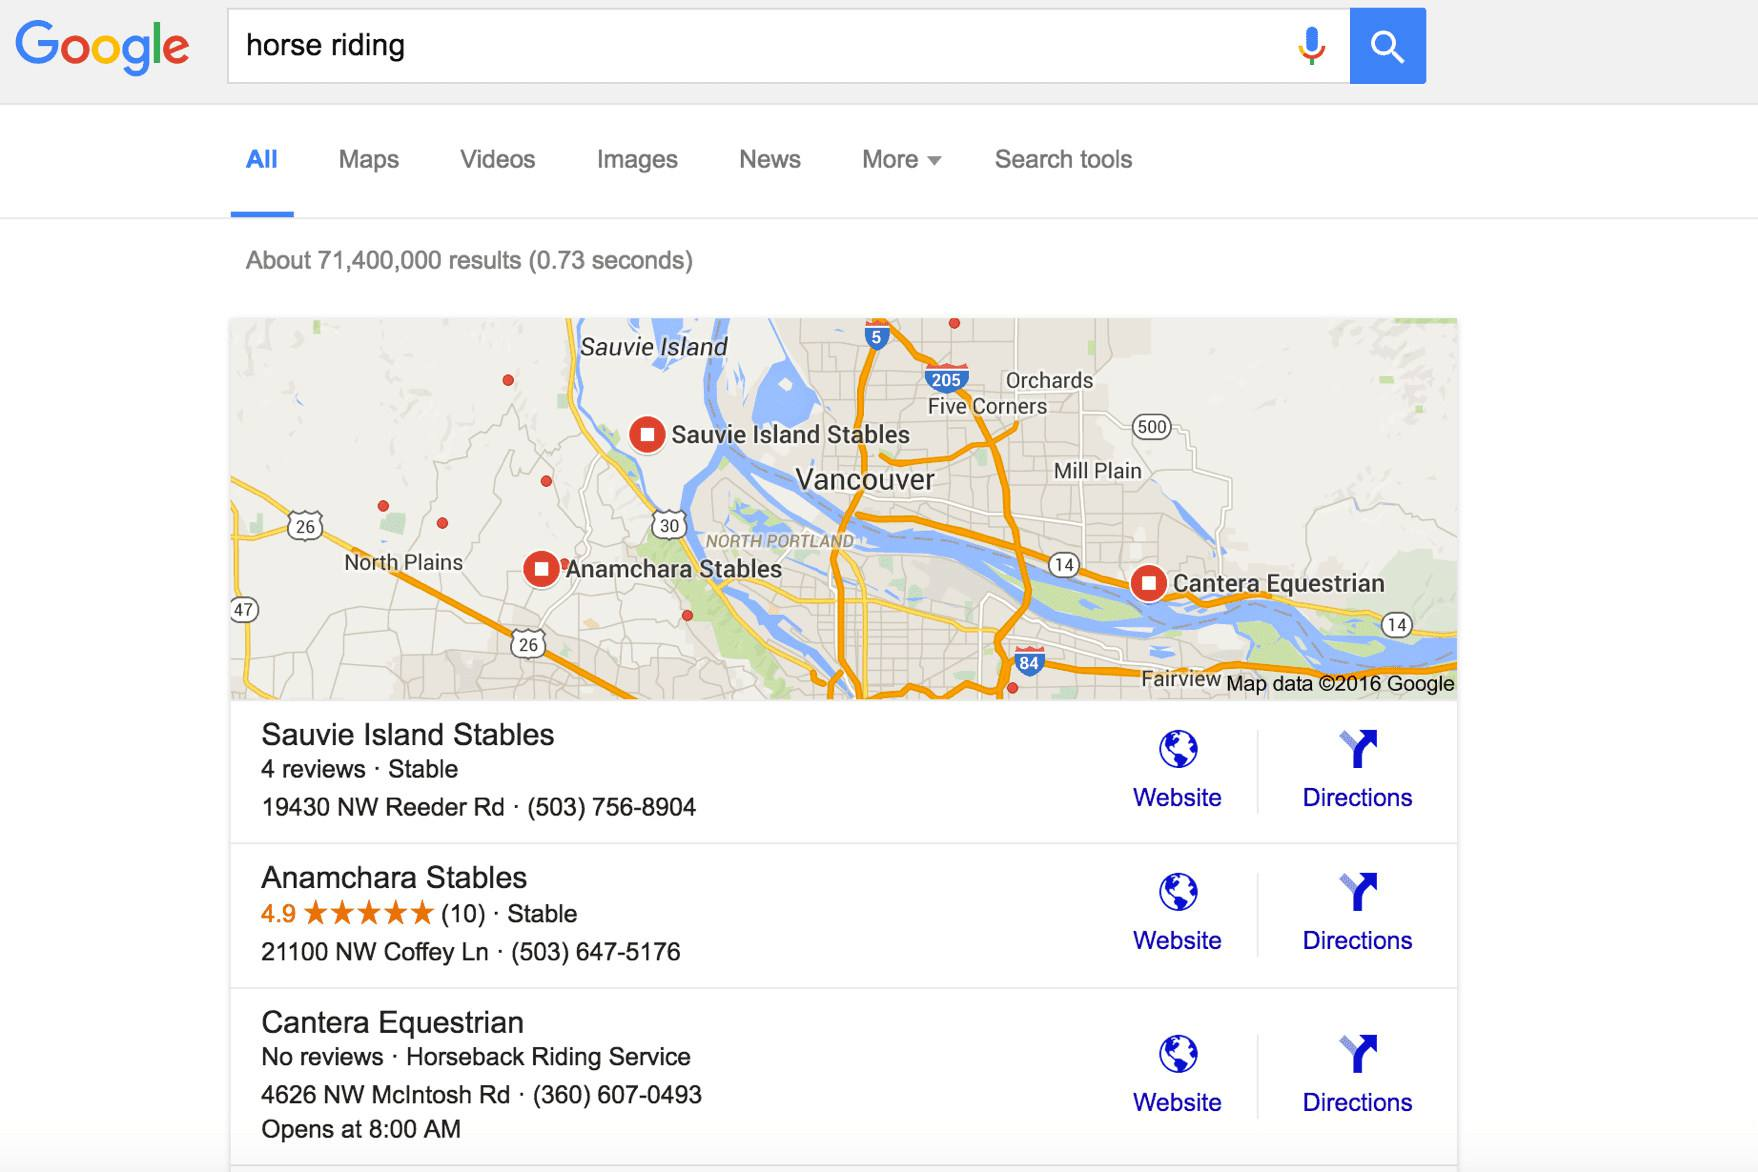 Google search for horse riding